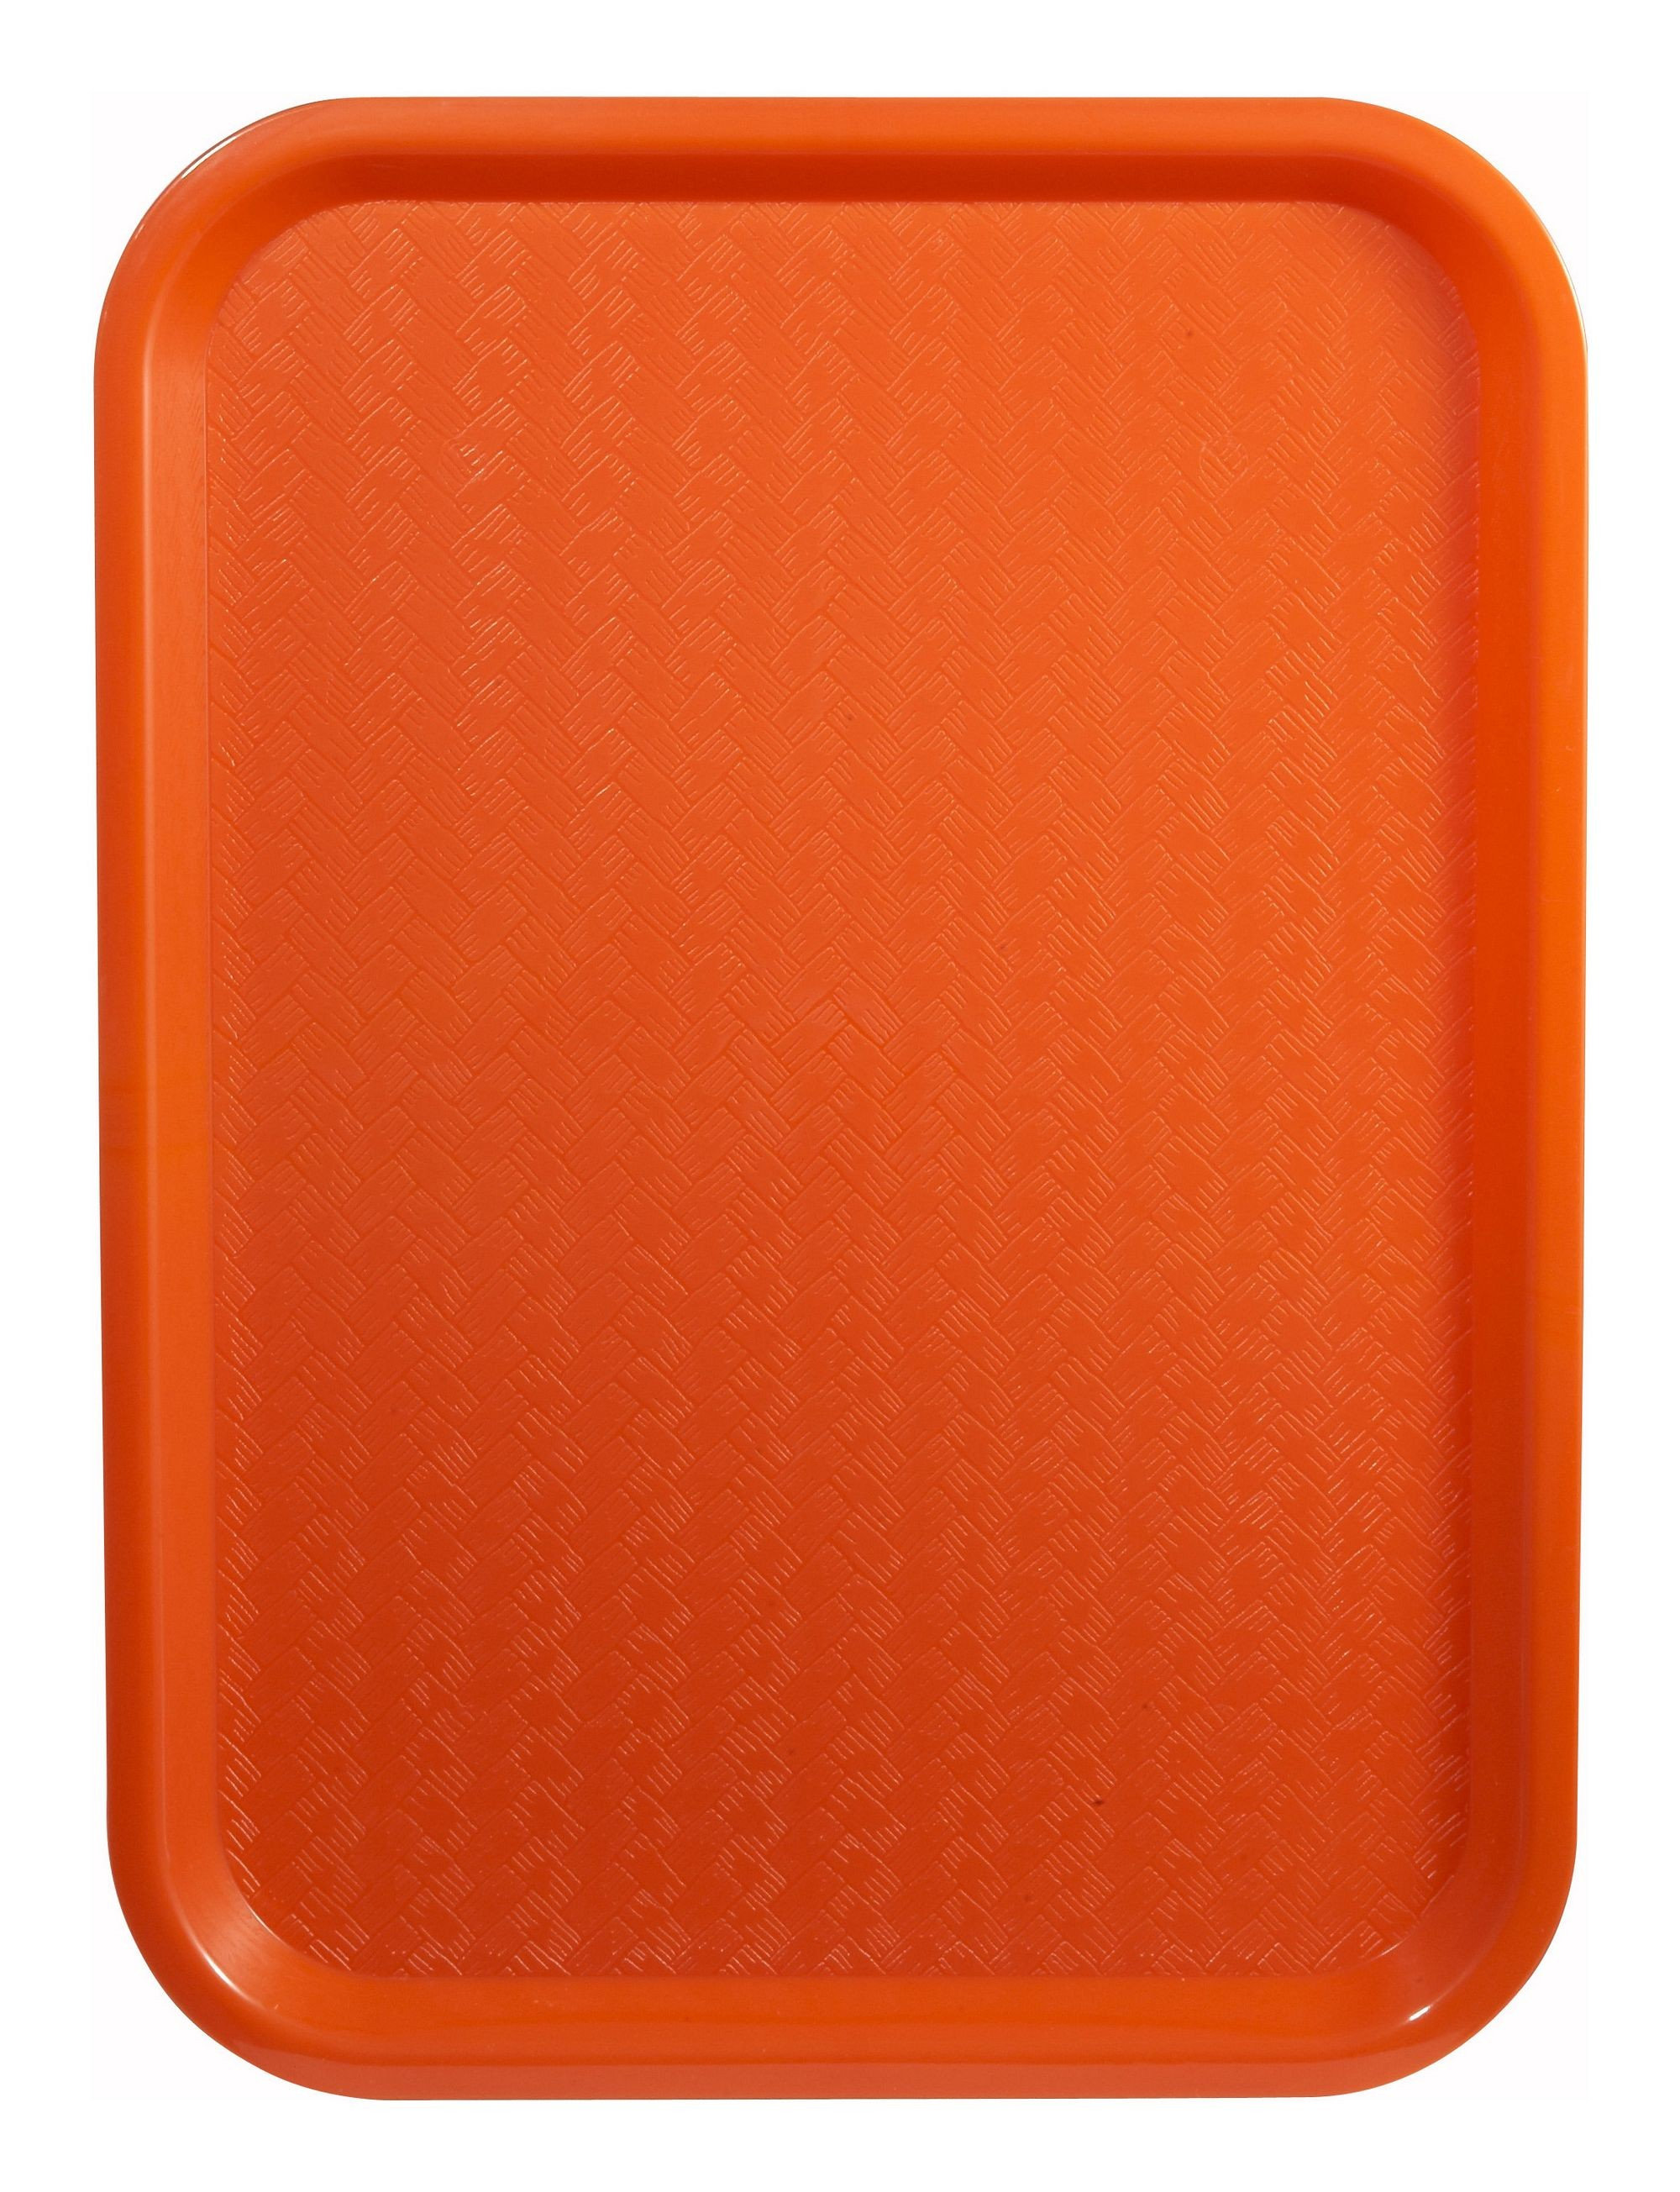 "Winco FFT-1216O Orange Plastic Fast Food Tray 12"" X 16"